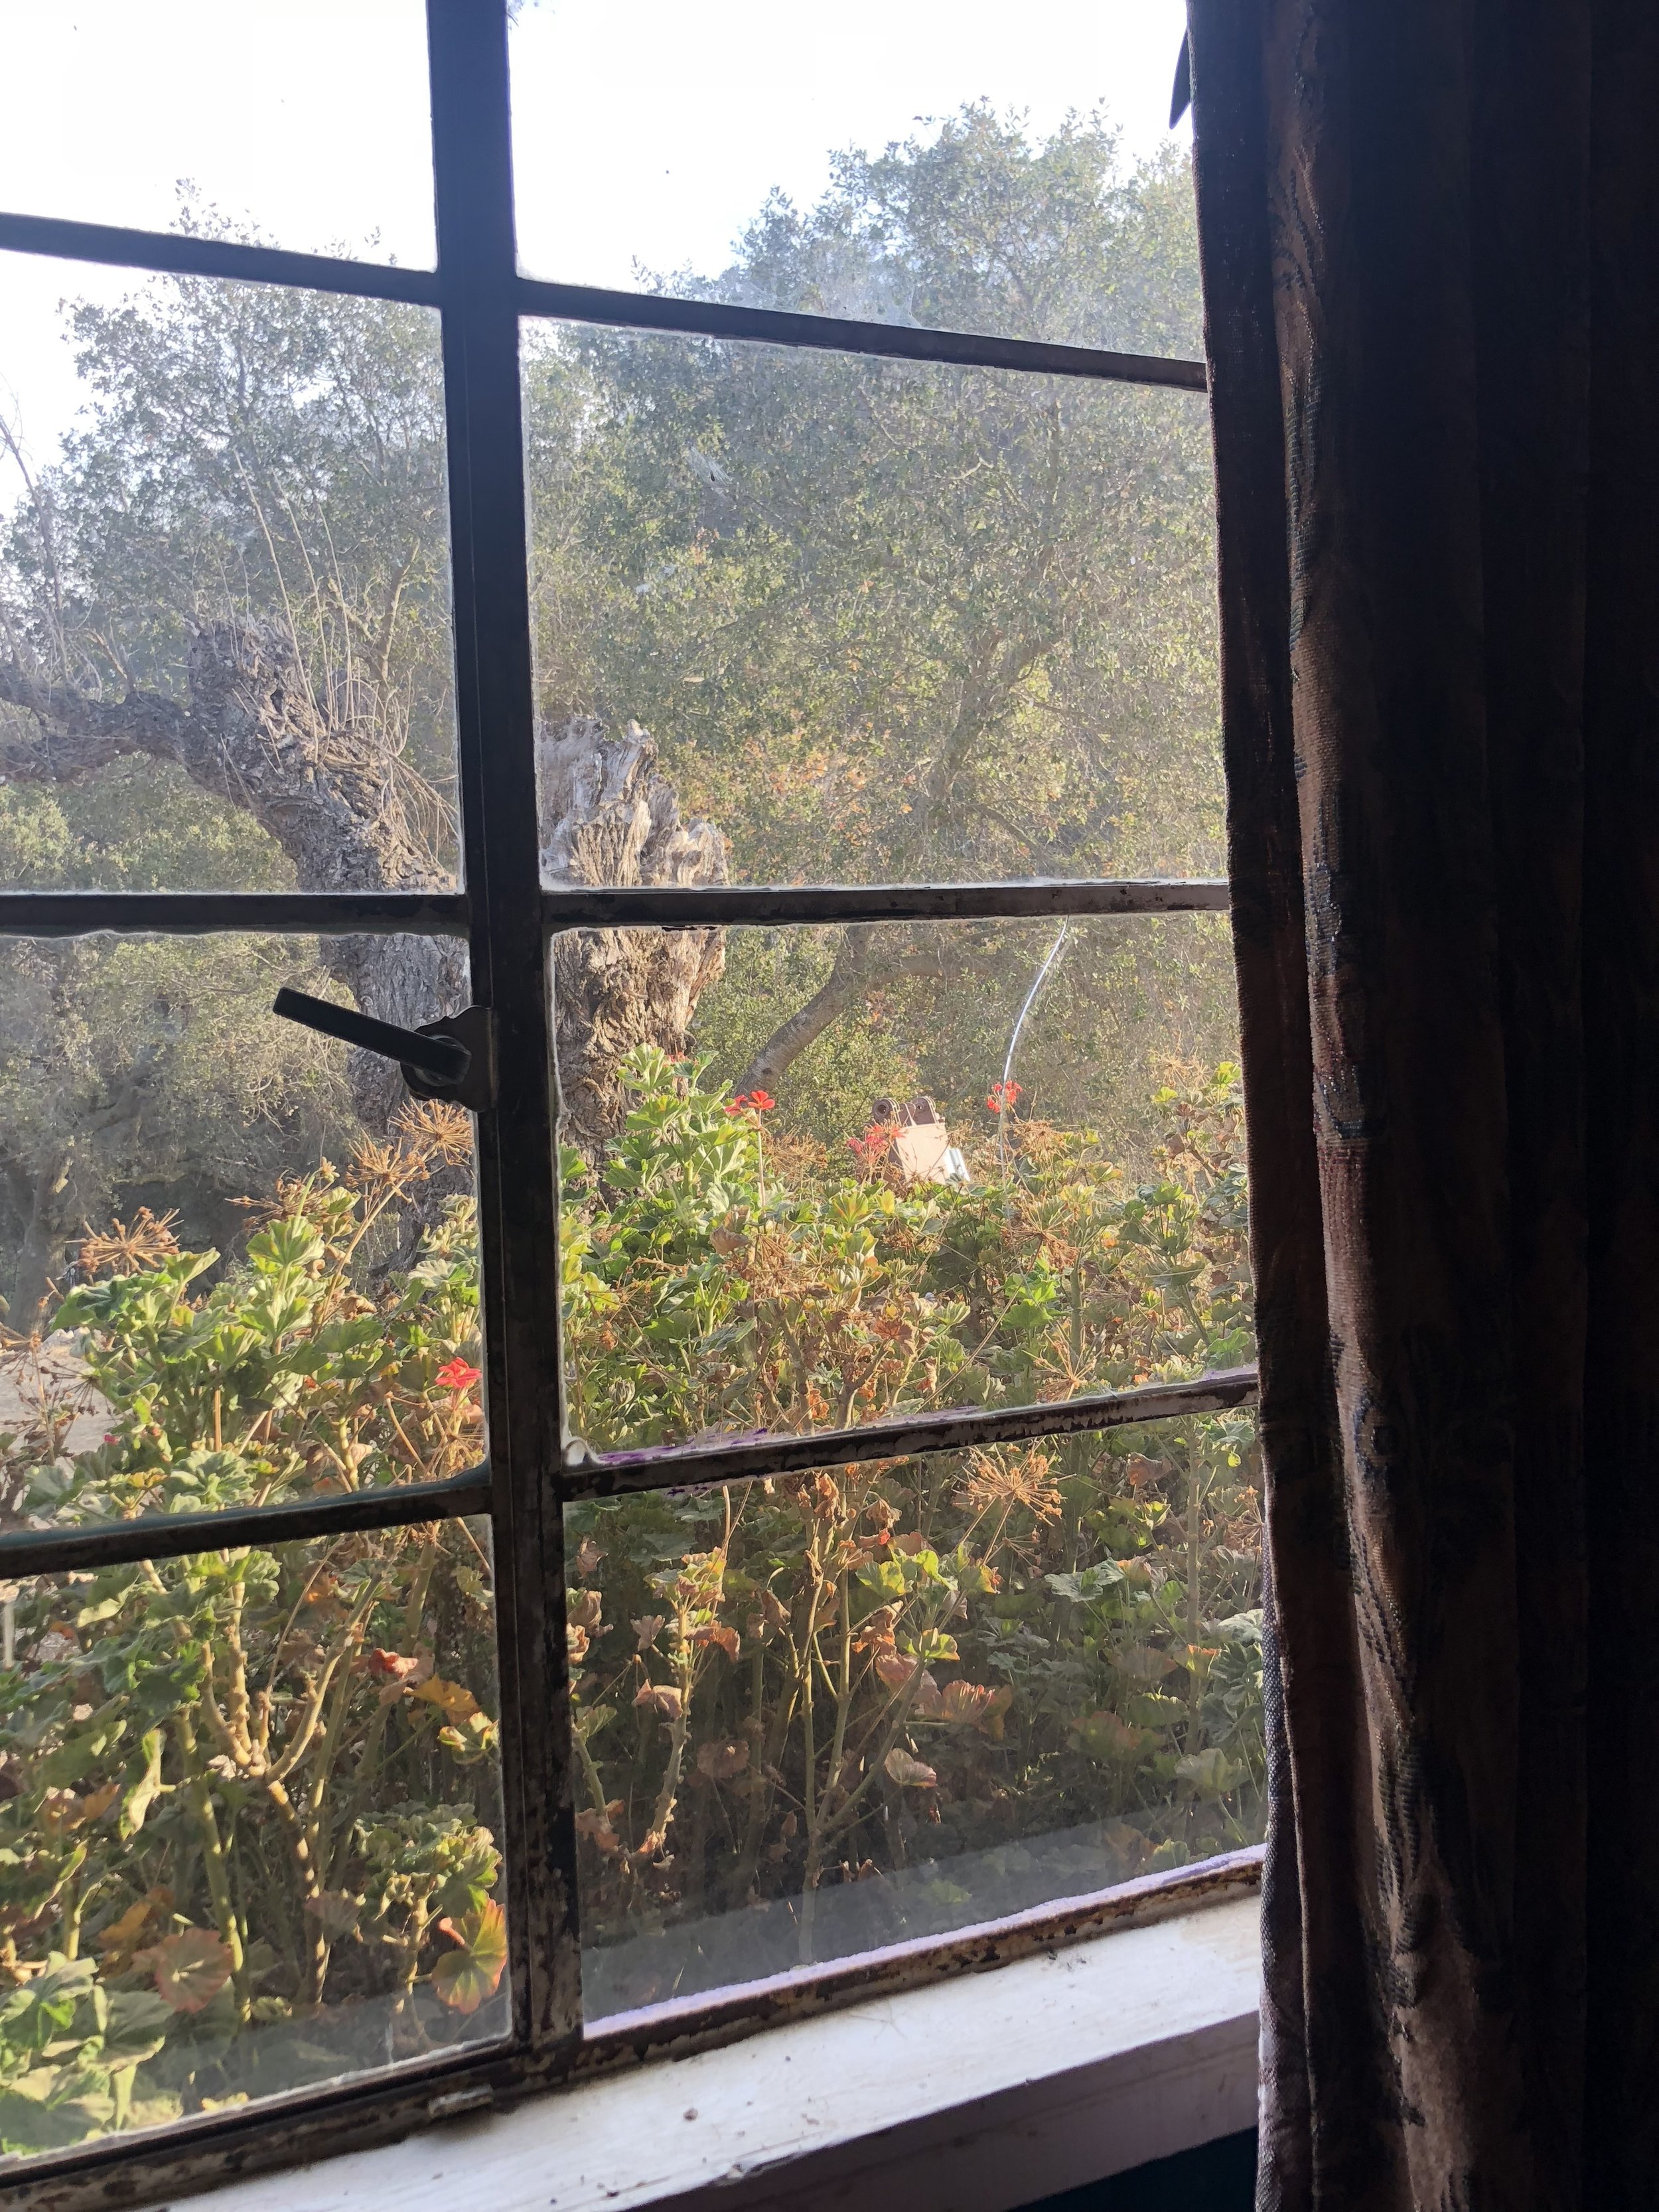 From inside our room in Topanga